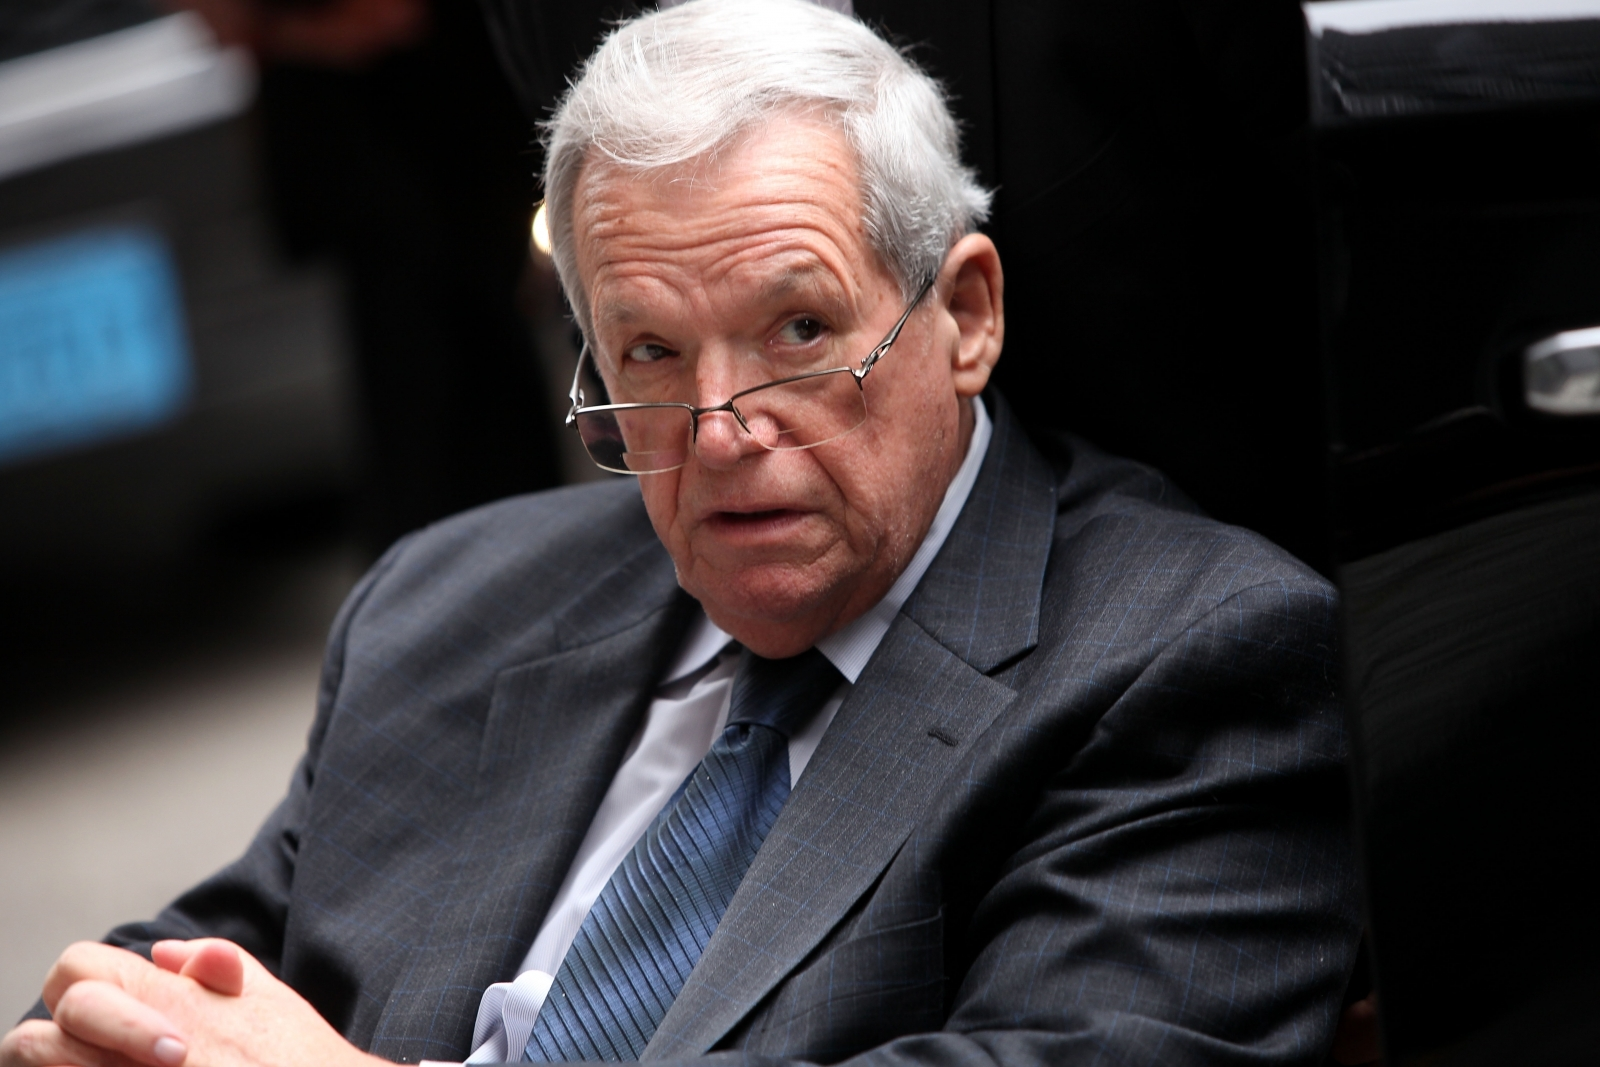 Judge subjects Hastert to restrictions